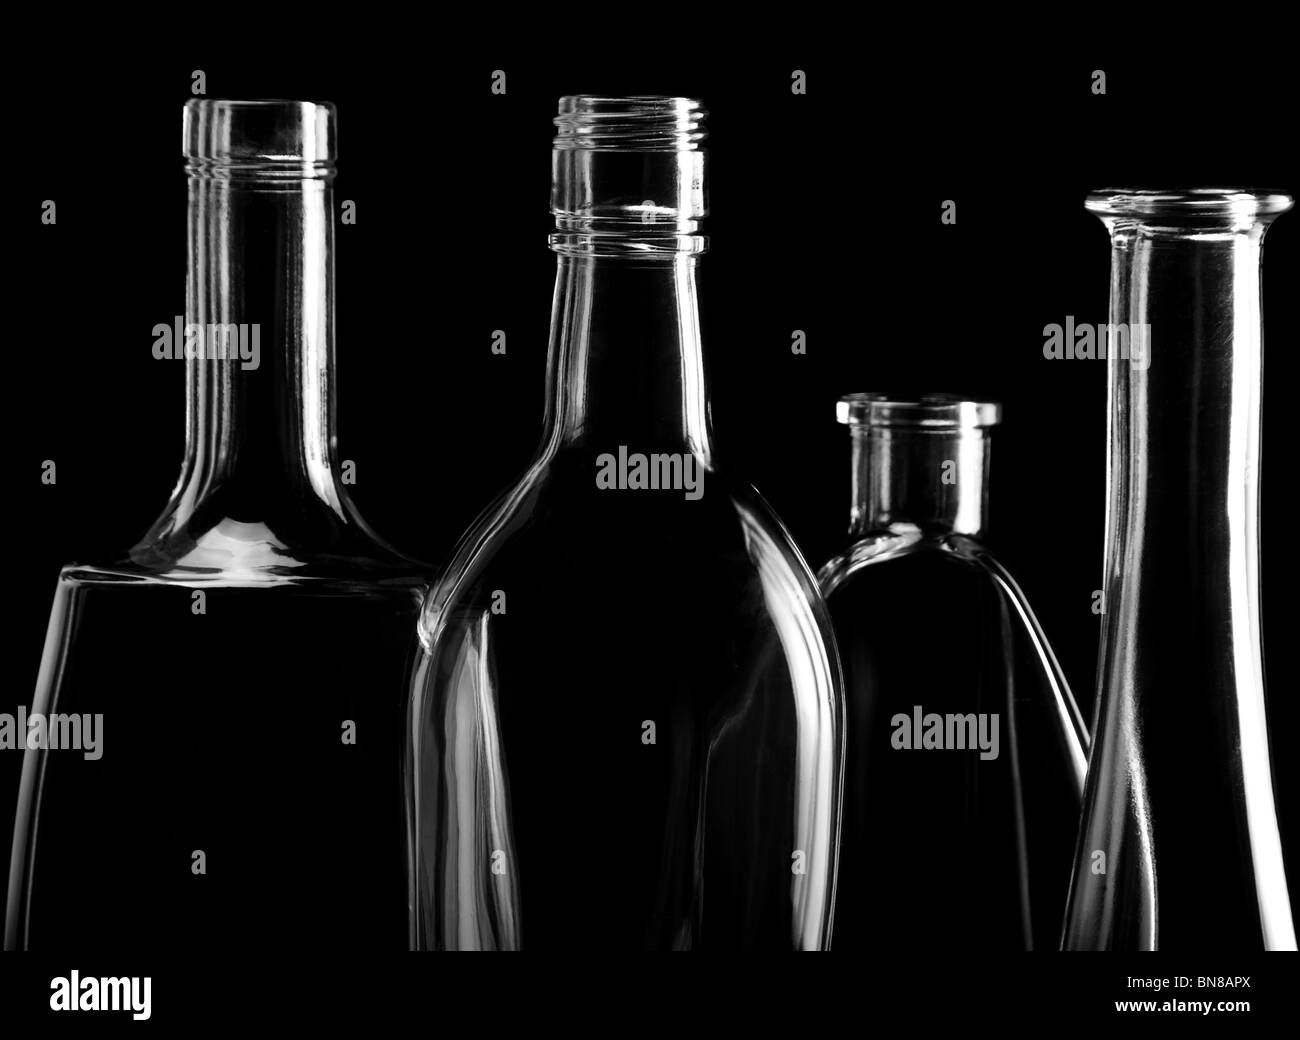 Abstract transparent glass bottle on black with reflection - Stock Image